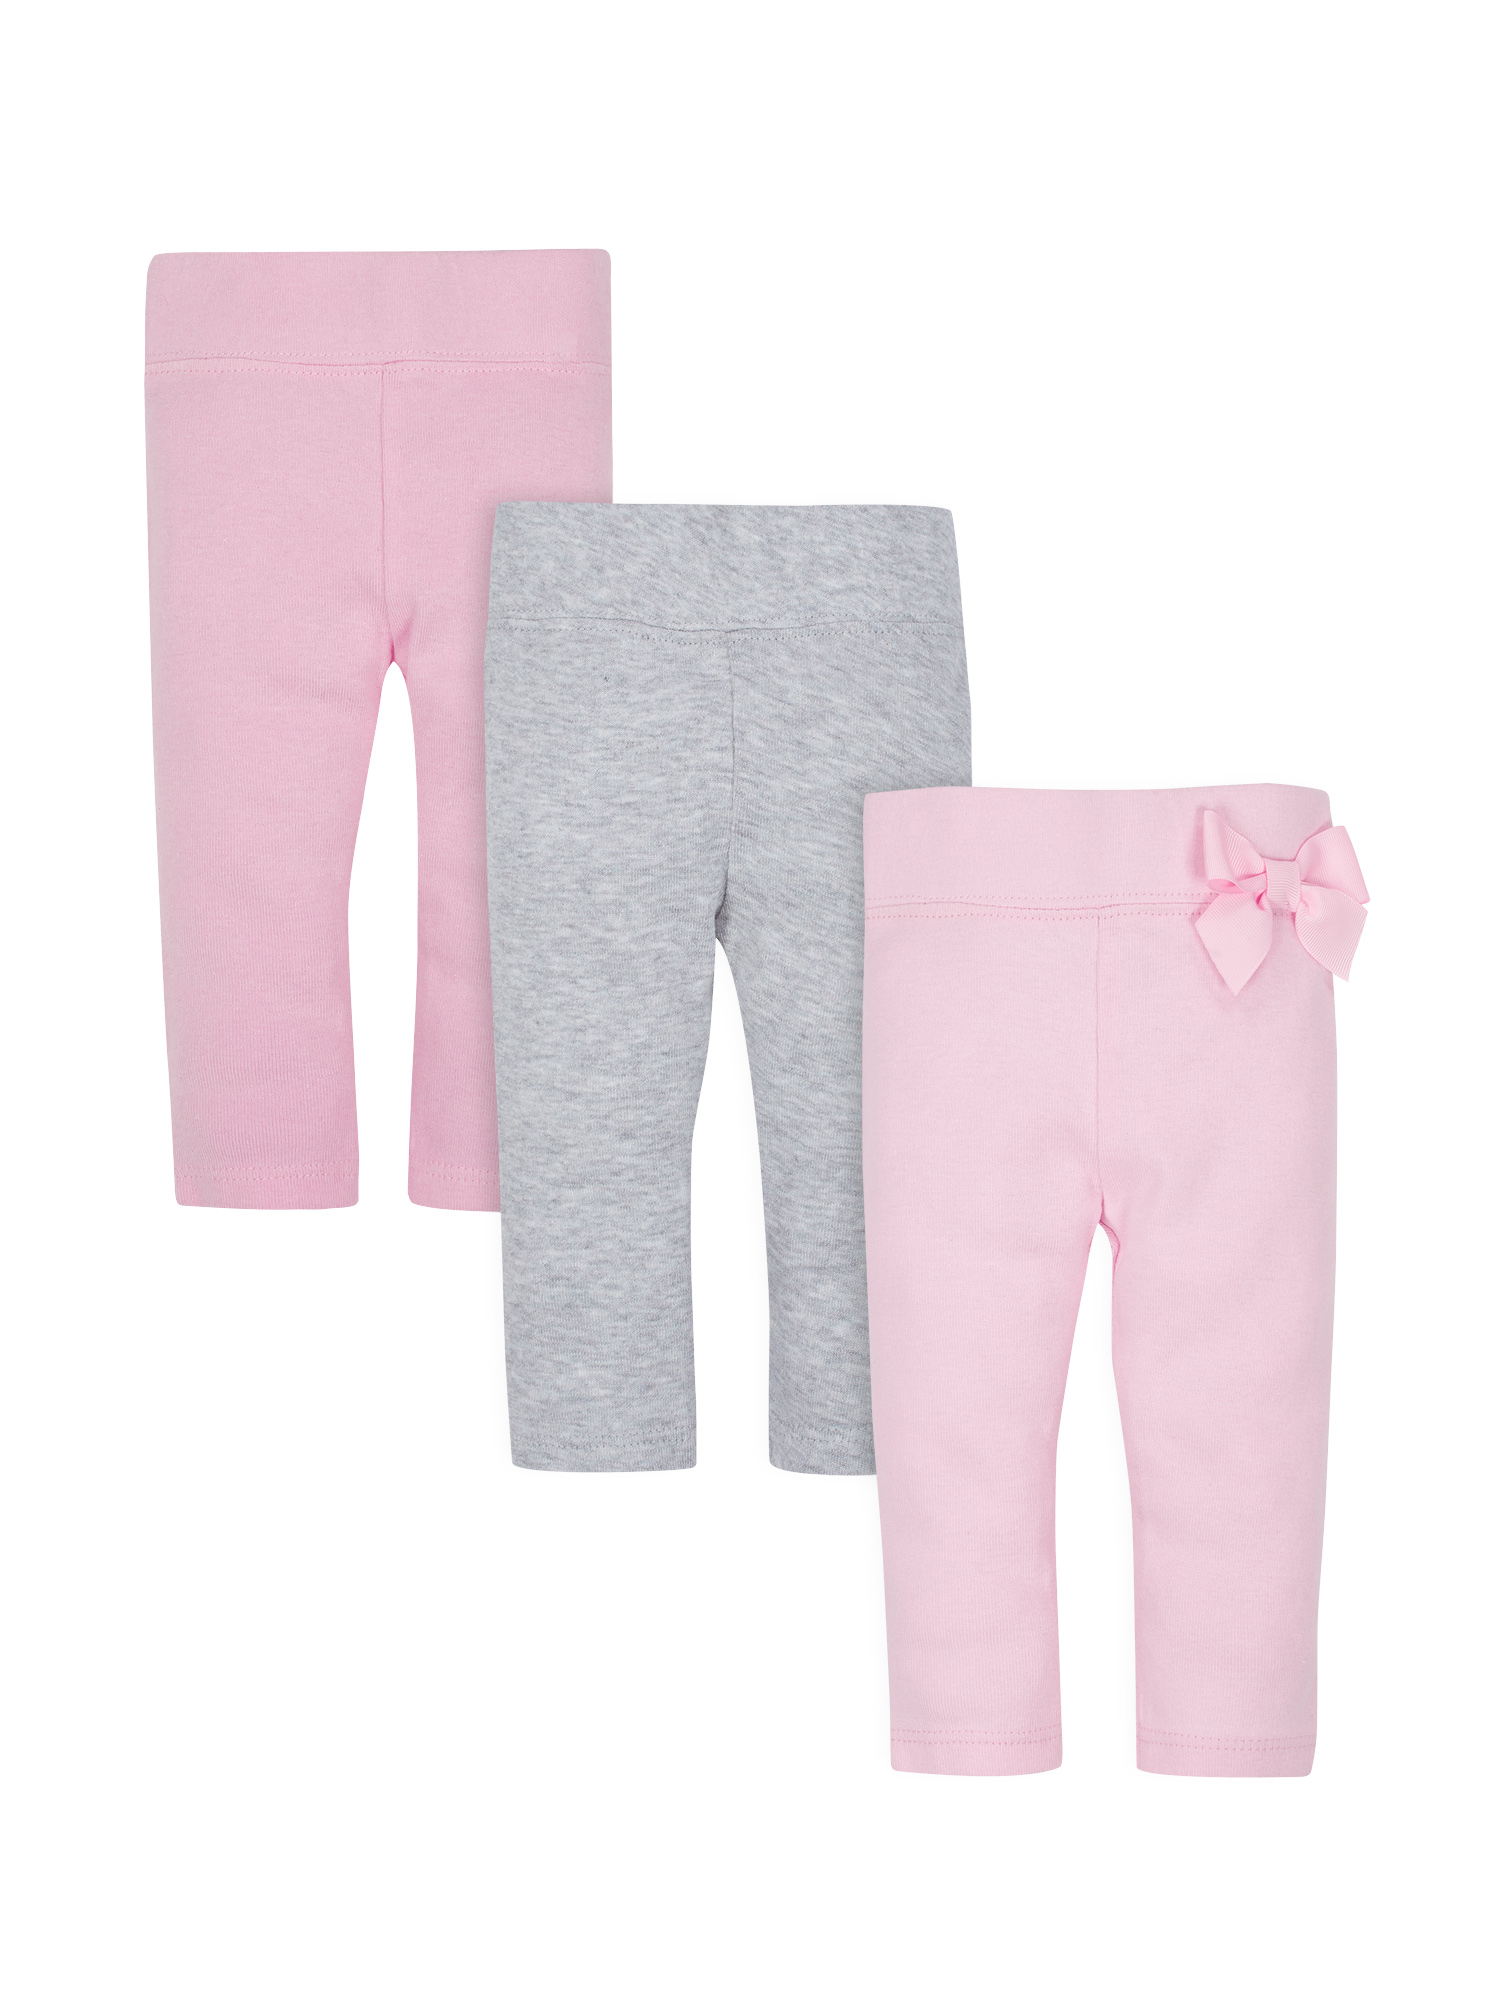 Organic Cotton Rib Slim Pants, 3pk (Baby Girls)